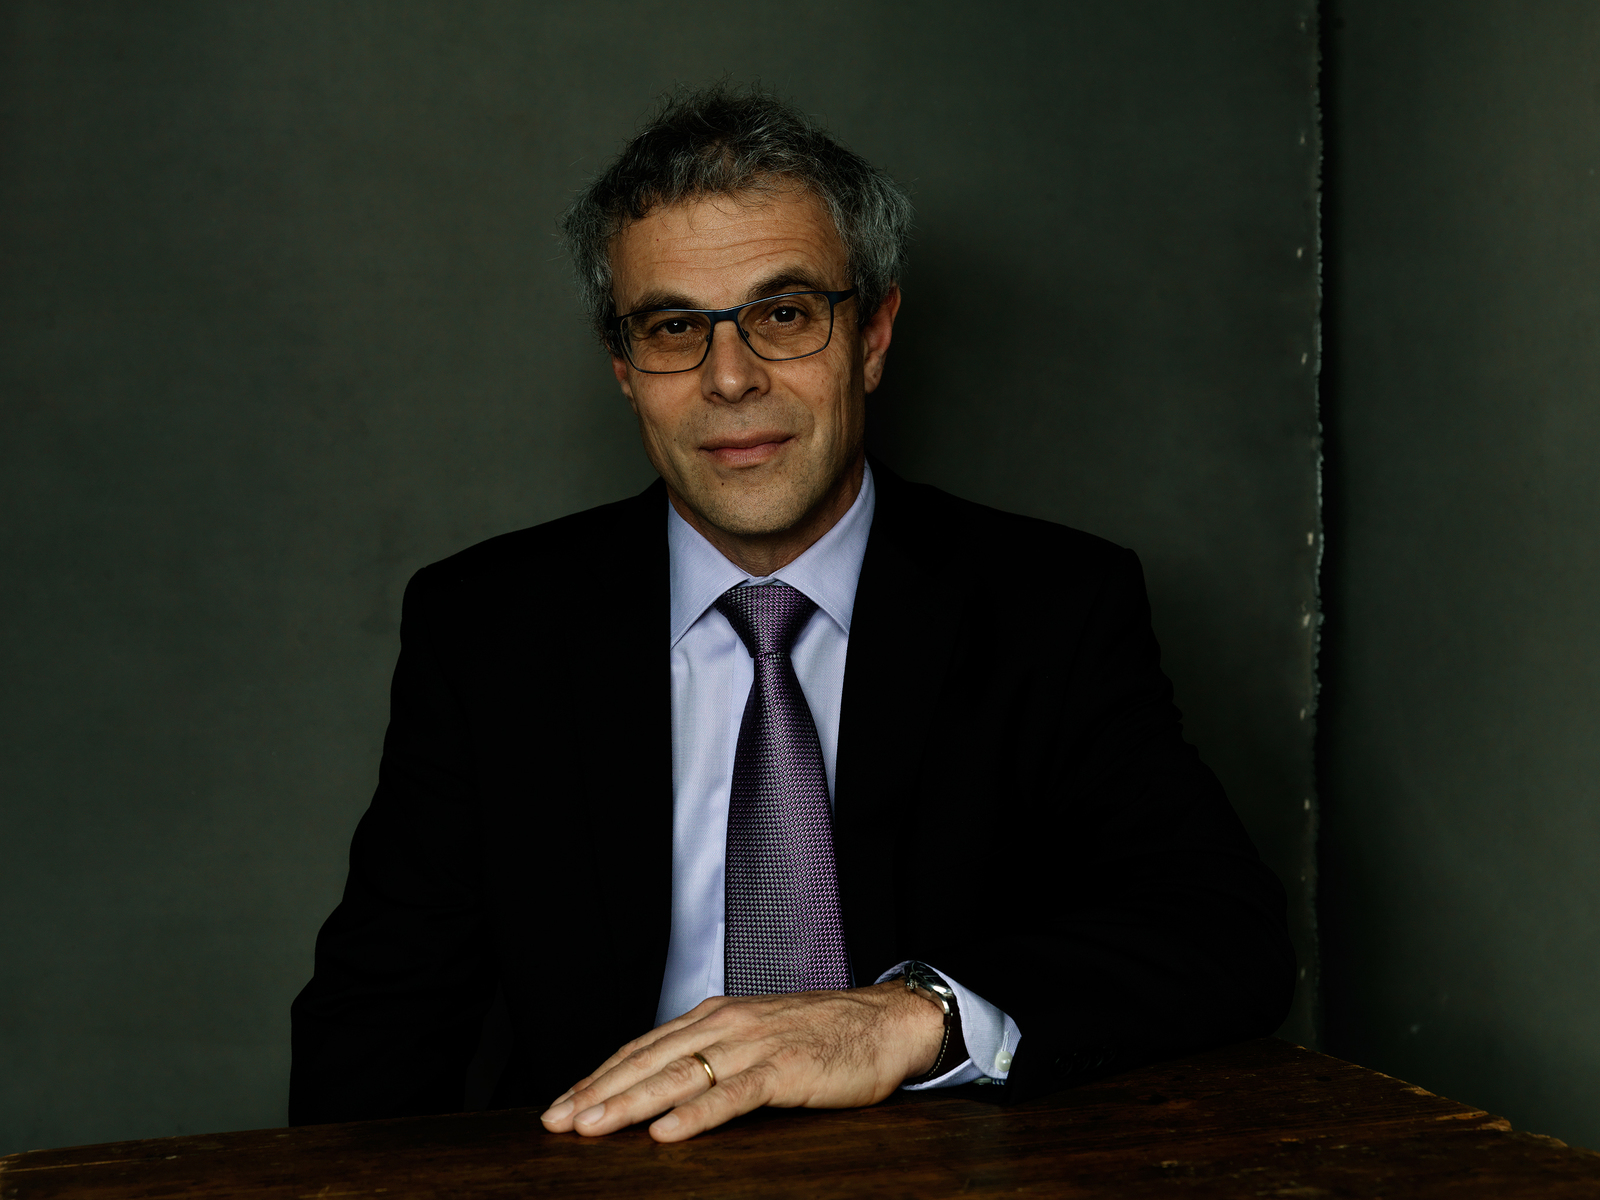 Laurent Goetschel | Director of swisspeace and Professor at the University of Basel